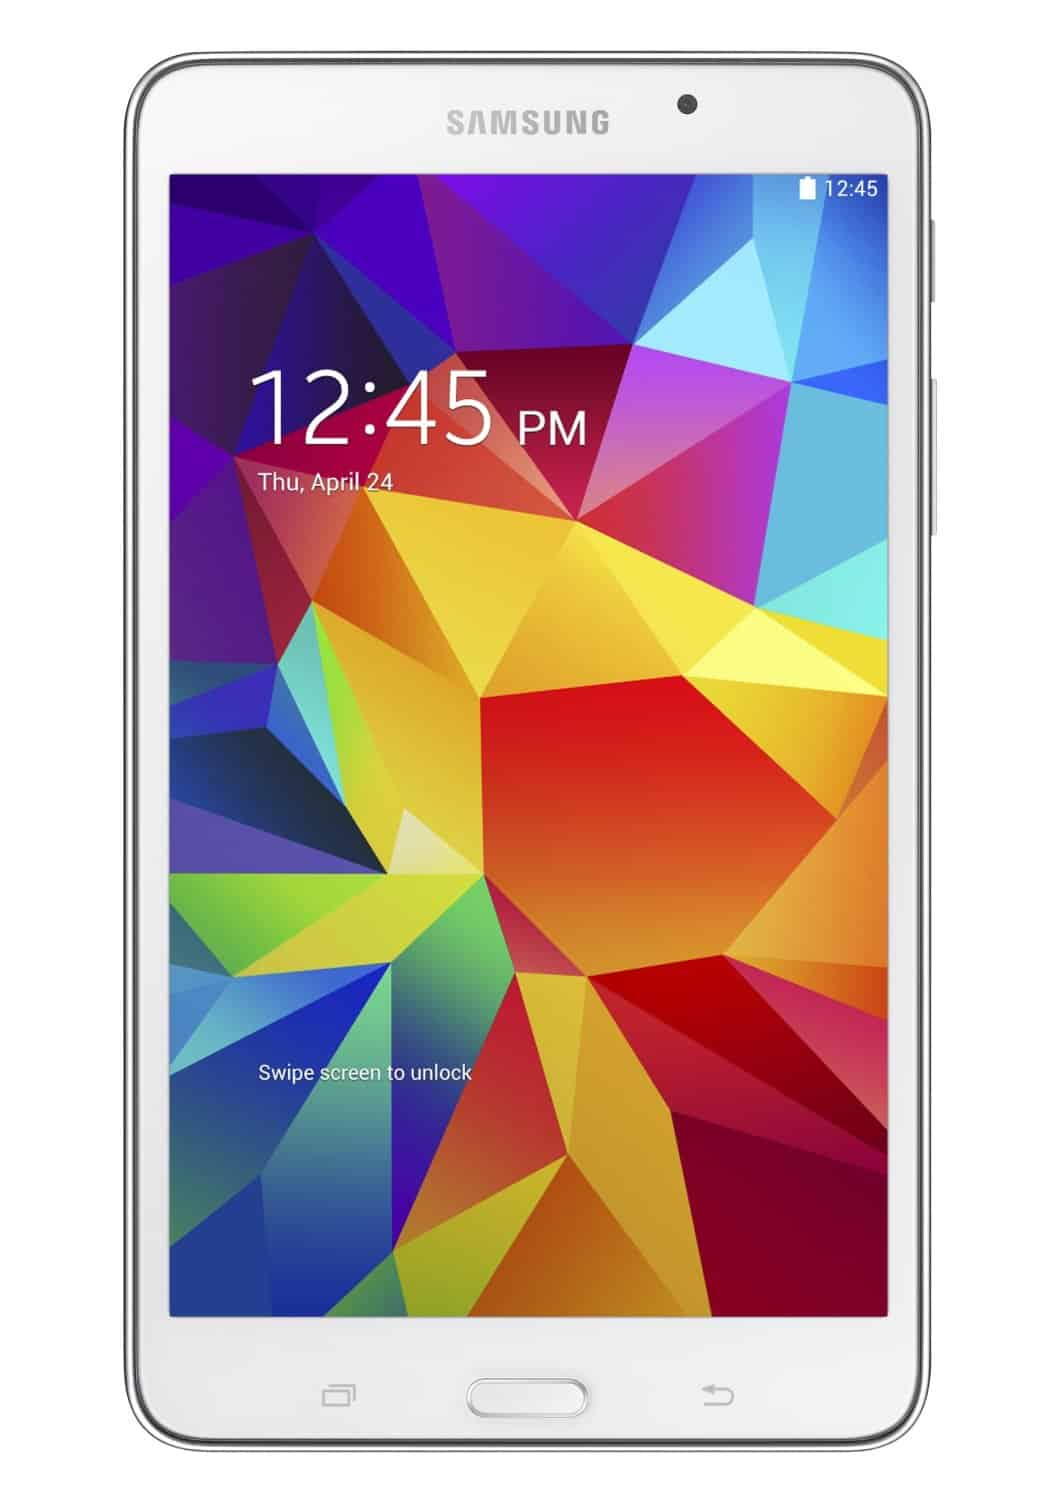 samsung galaxy s4 png transparent background. samsung galaxy s4 png transparent background